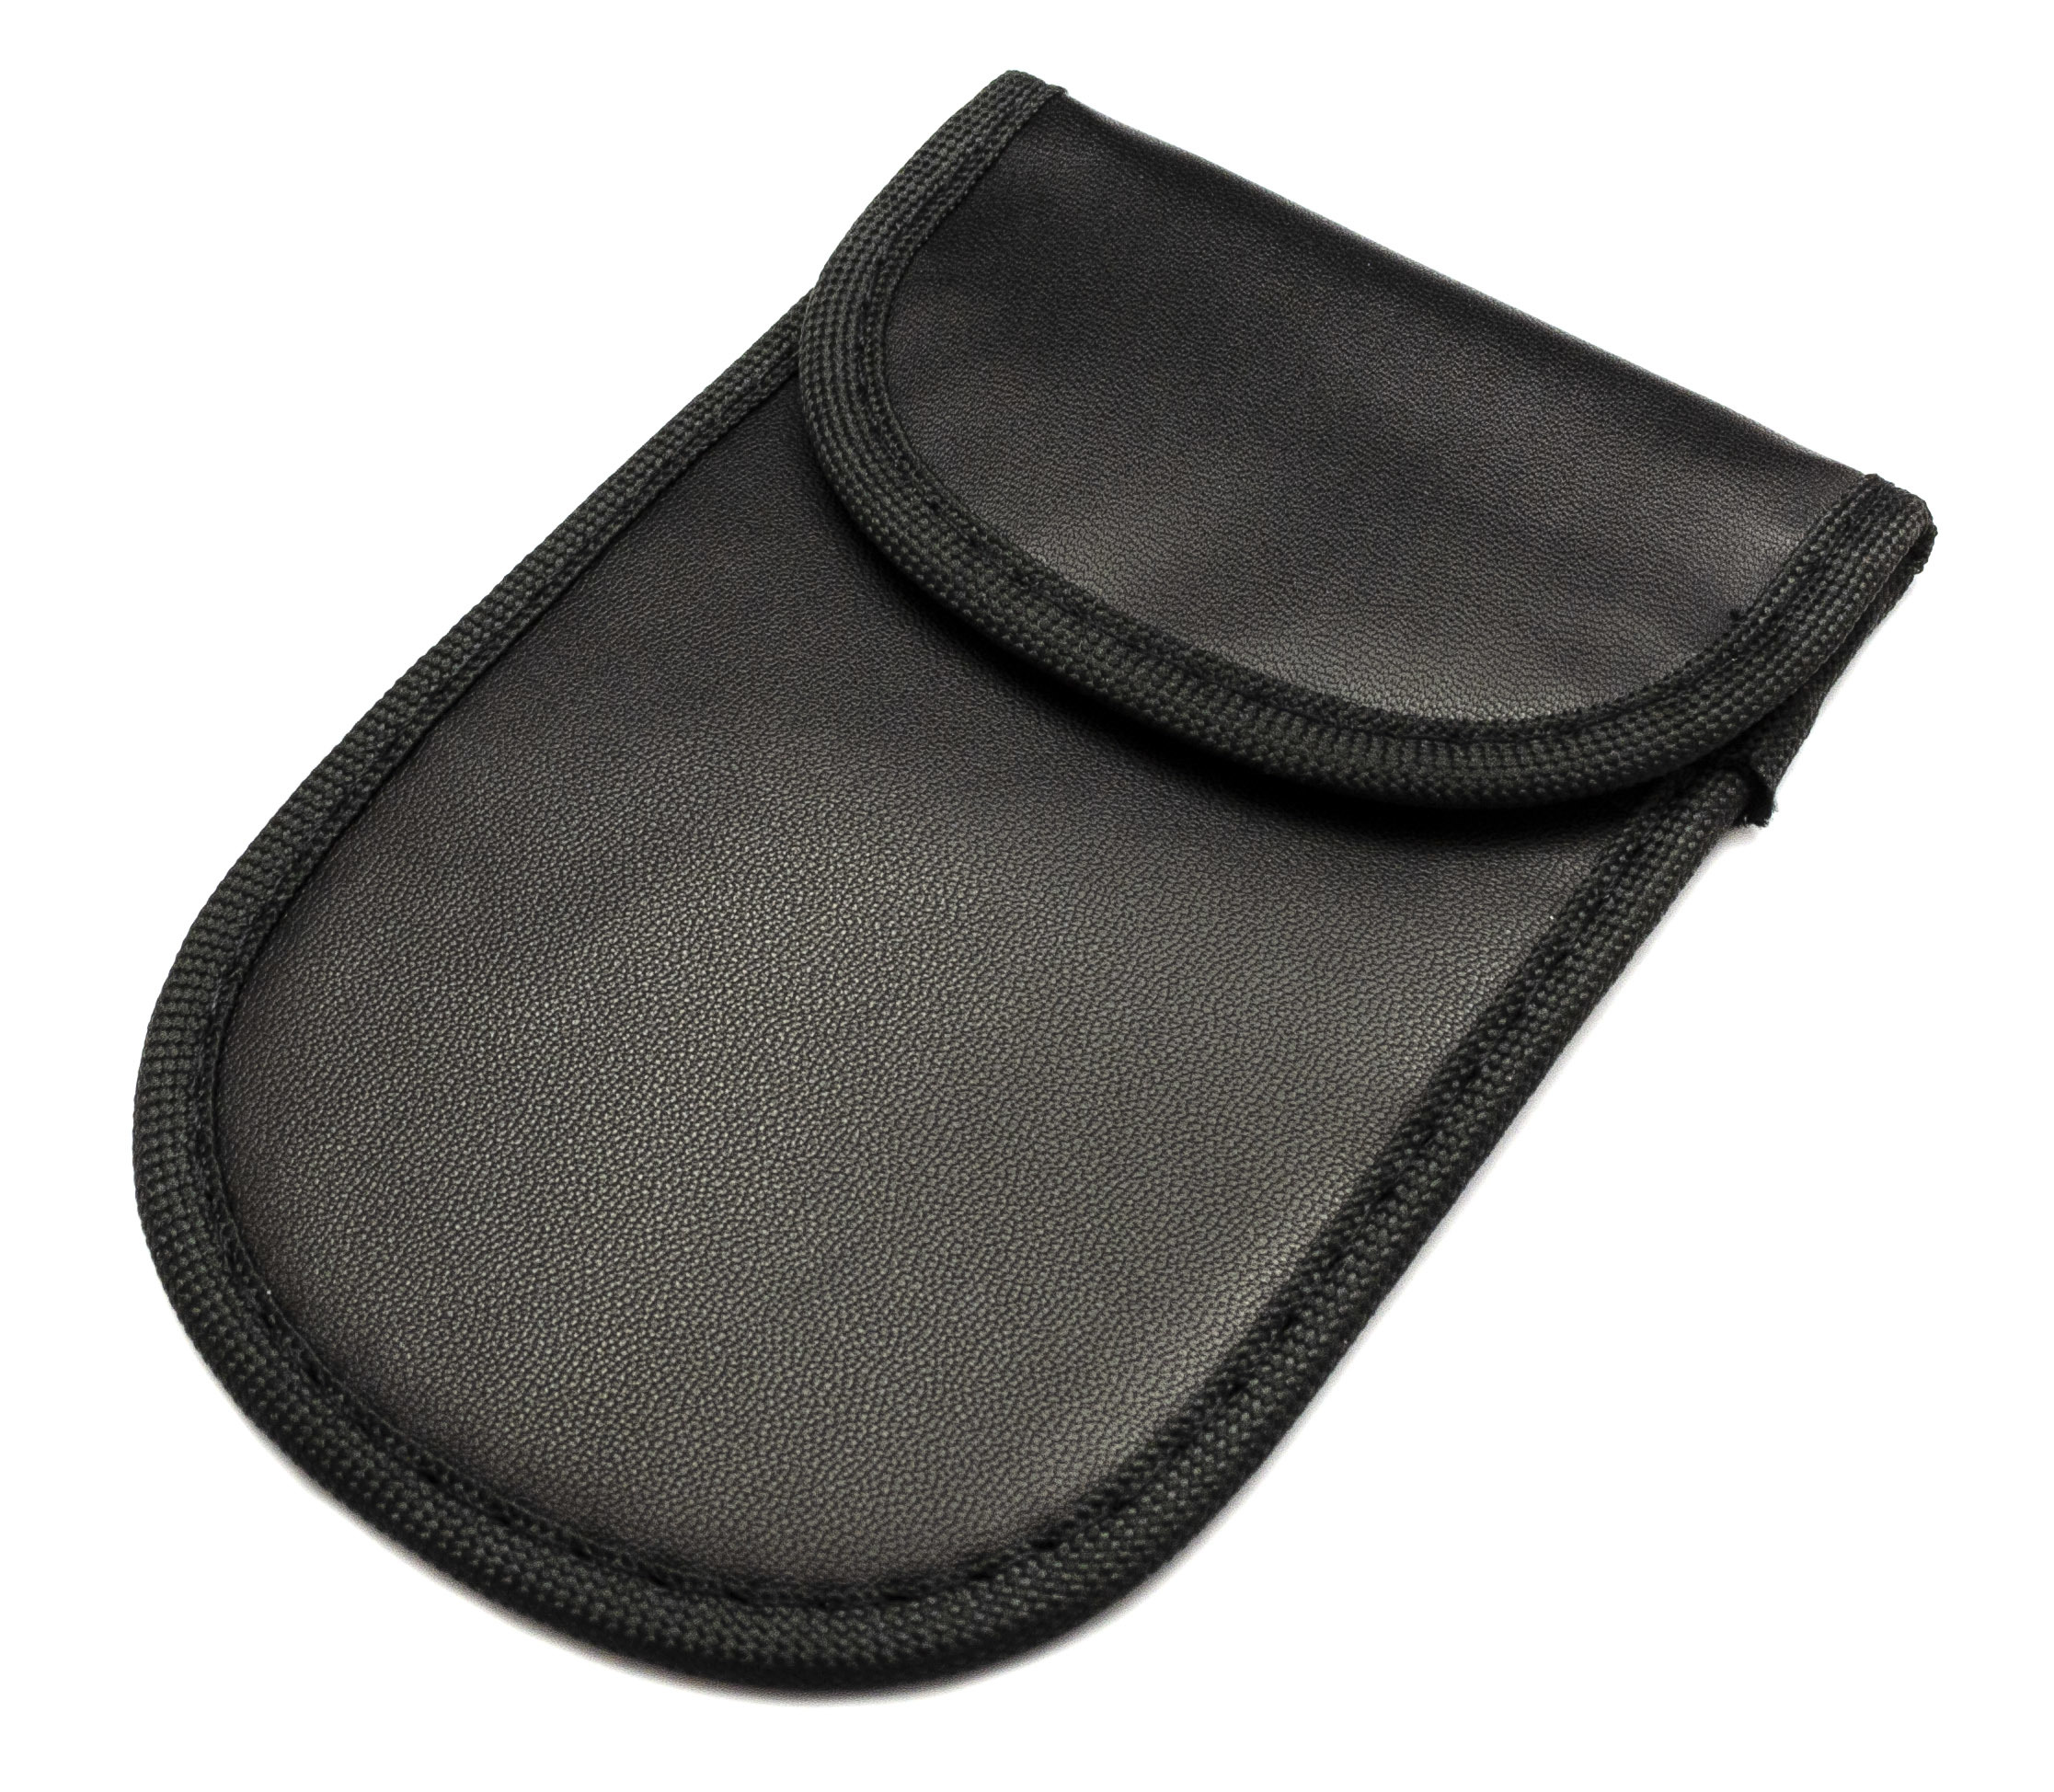 Image for Synthetic Leather RFID Signal Blocking Wallet for Proximity Keys